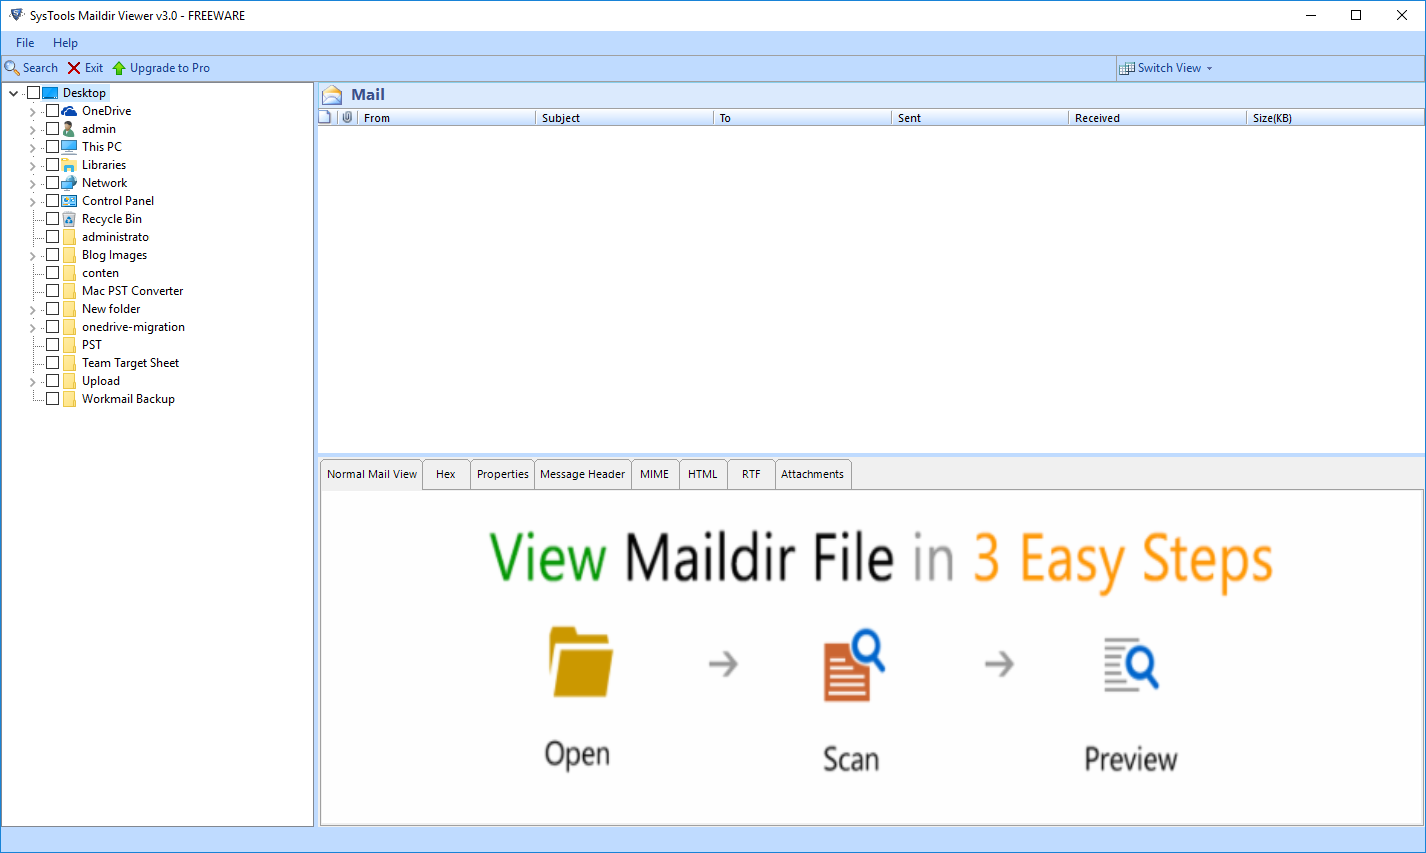 maildir viewer windows